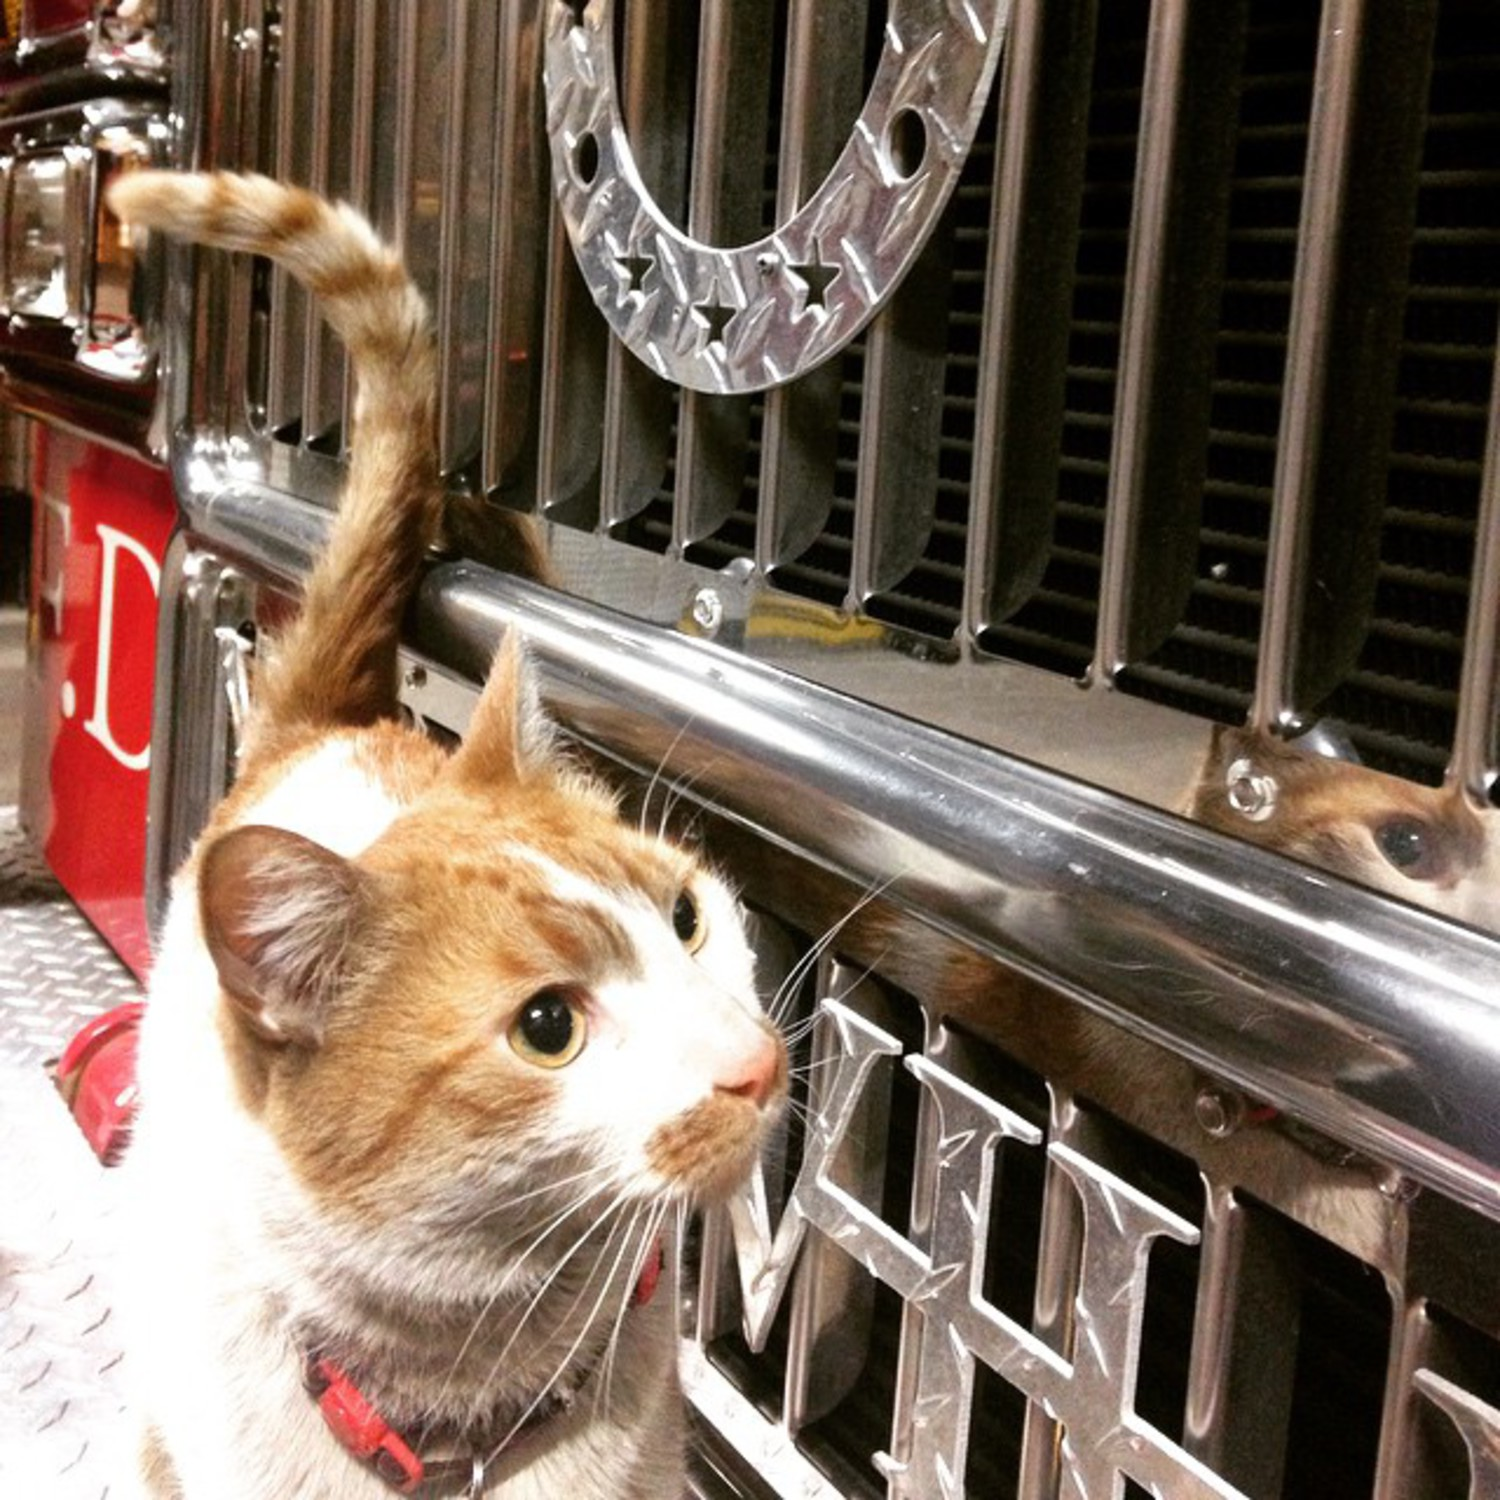 I better see my whiskers in the reflection or these probies are going to have to deal with me. #morepolishing